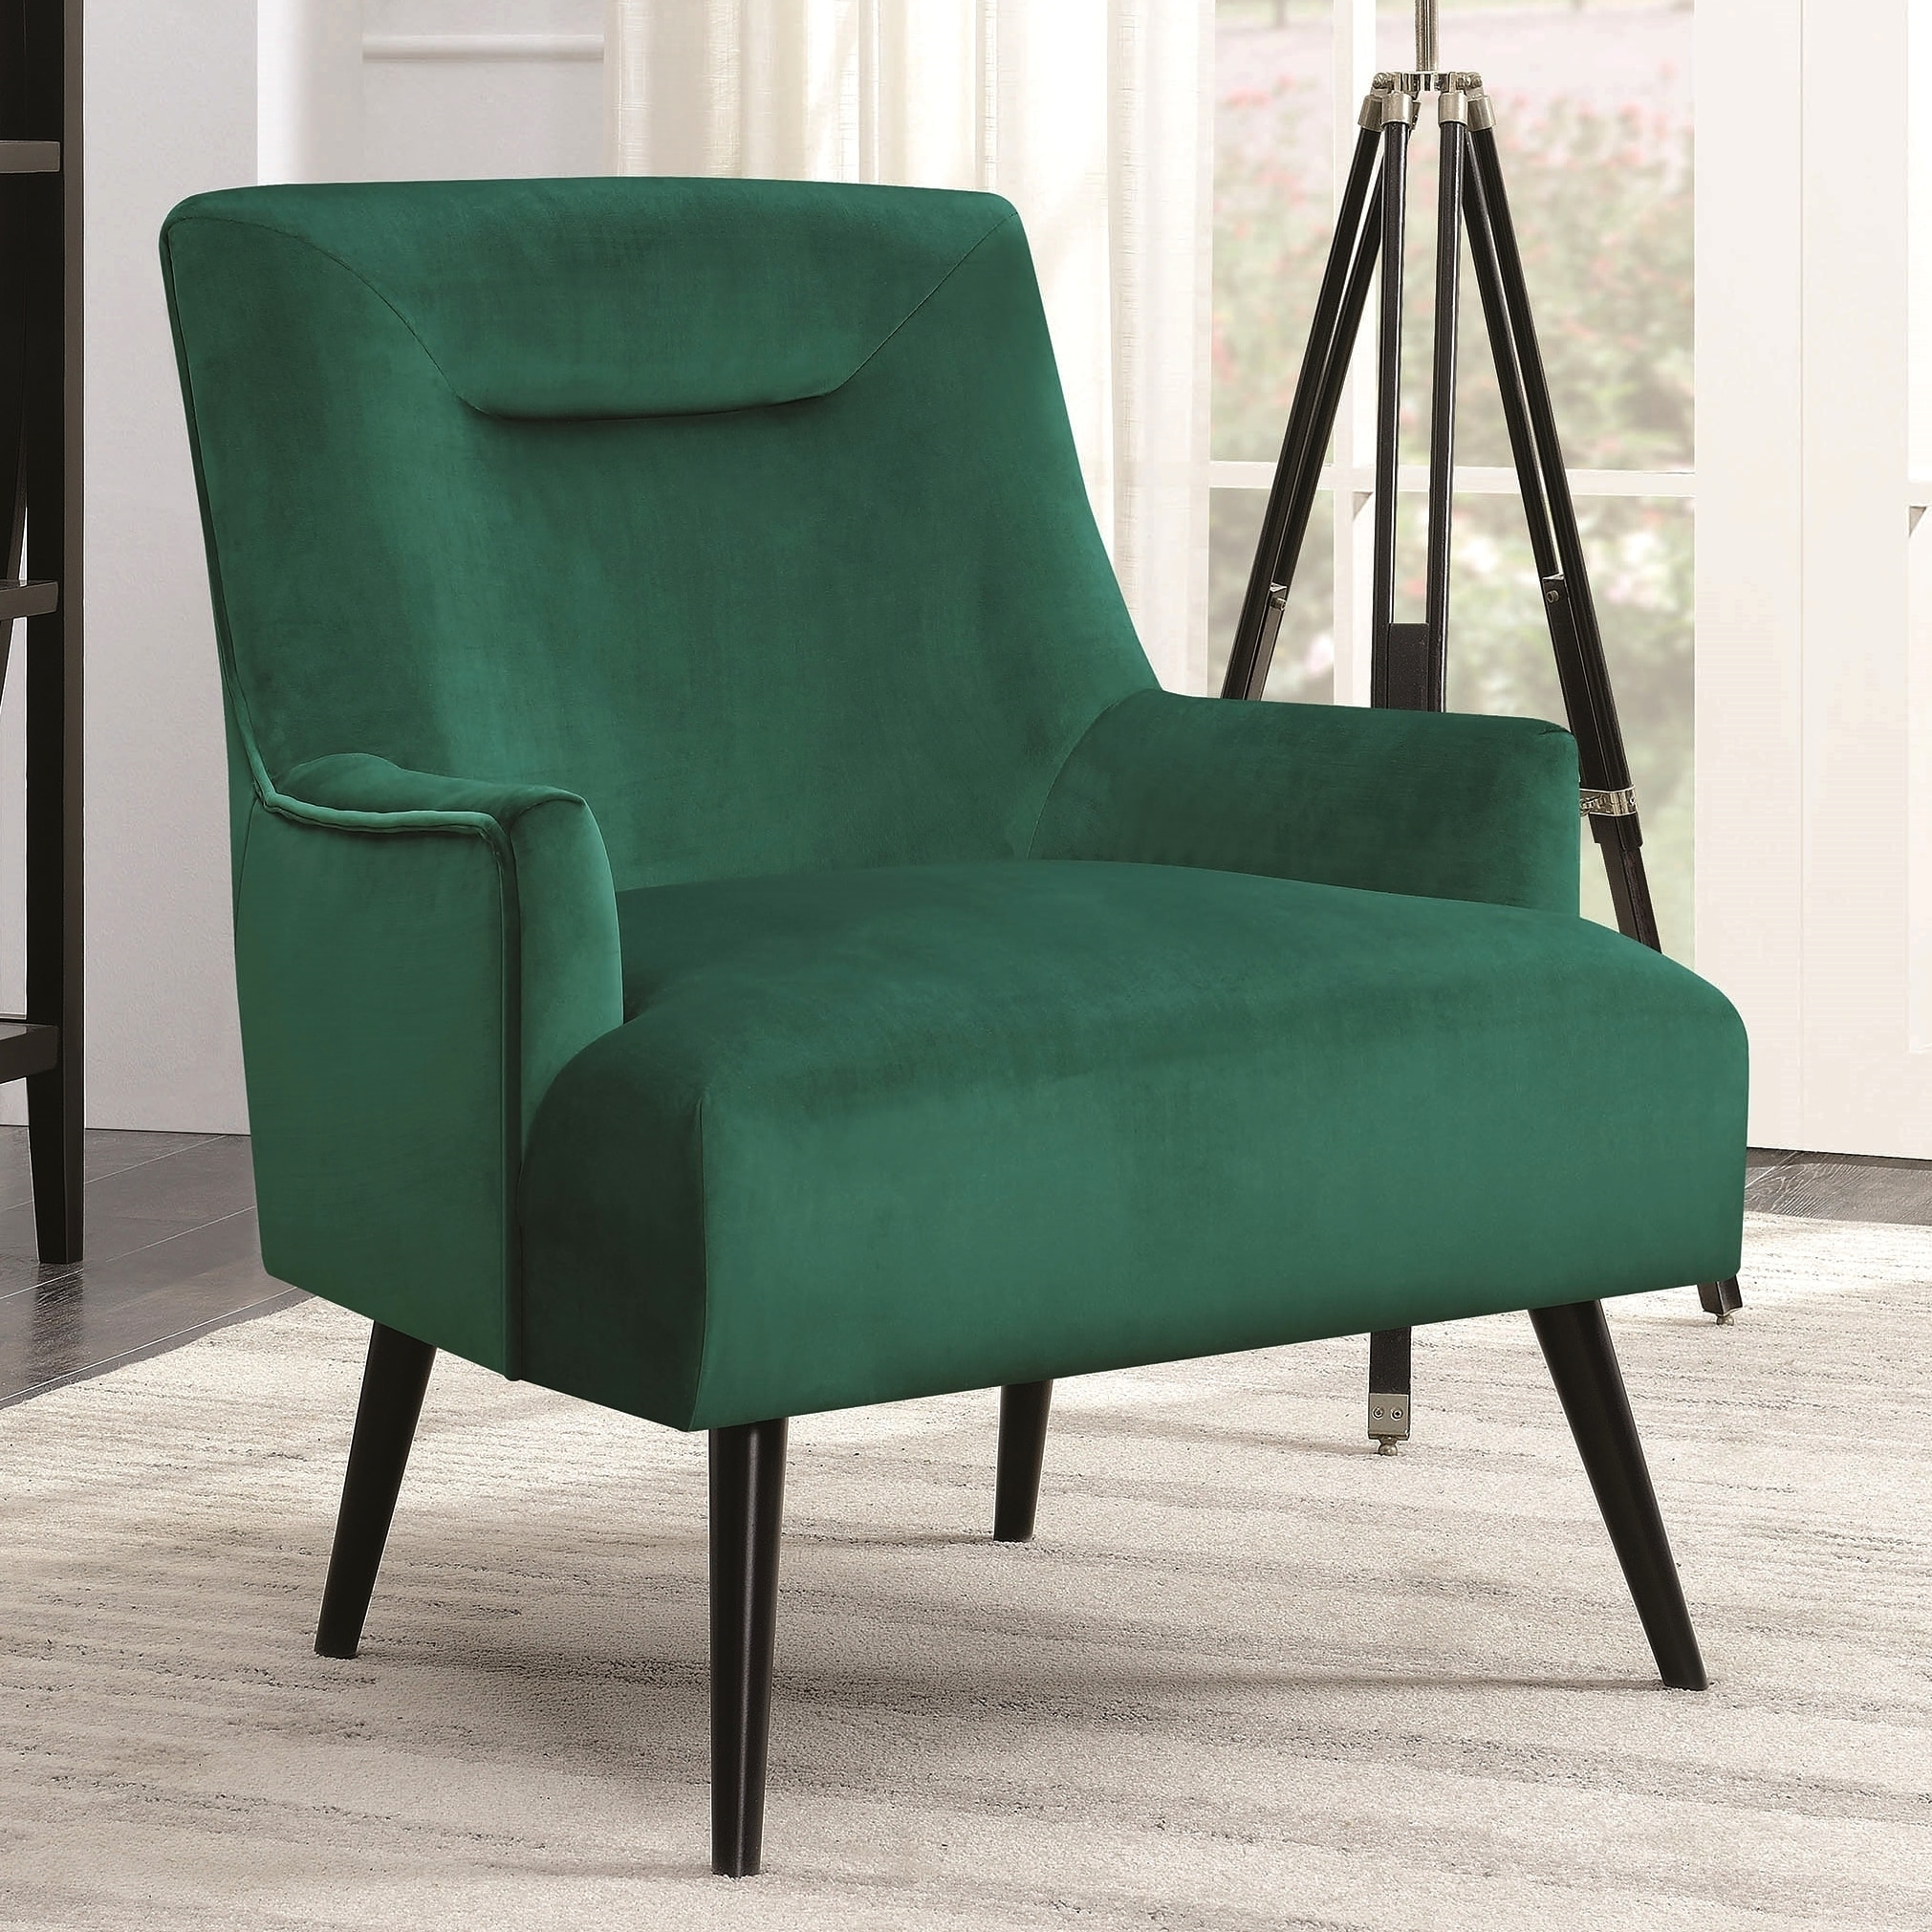 Green Velvet Wood Modern Mid Century Design Living Room Accent Chair